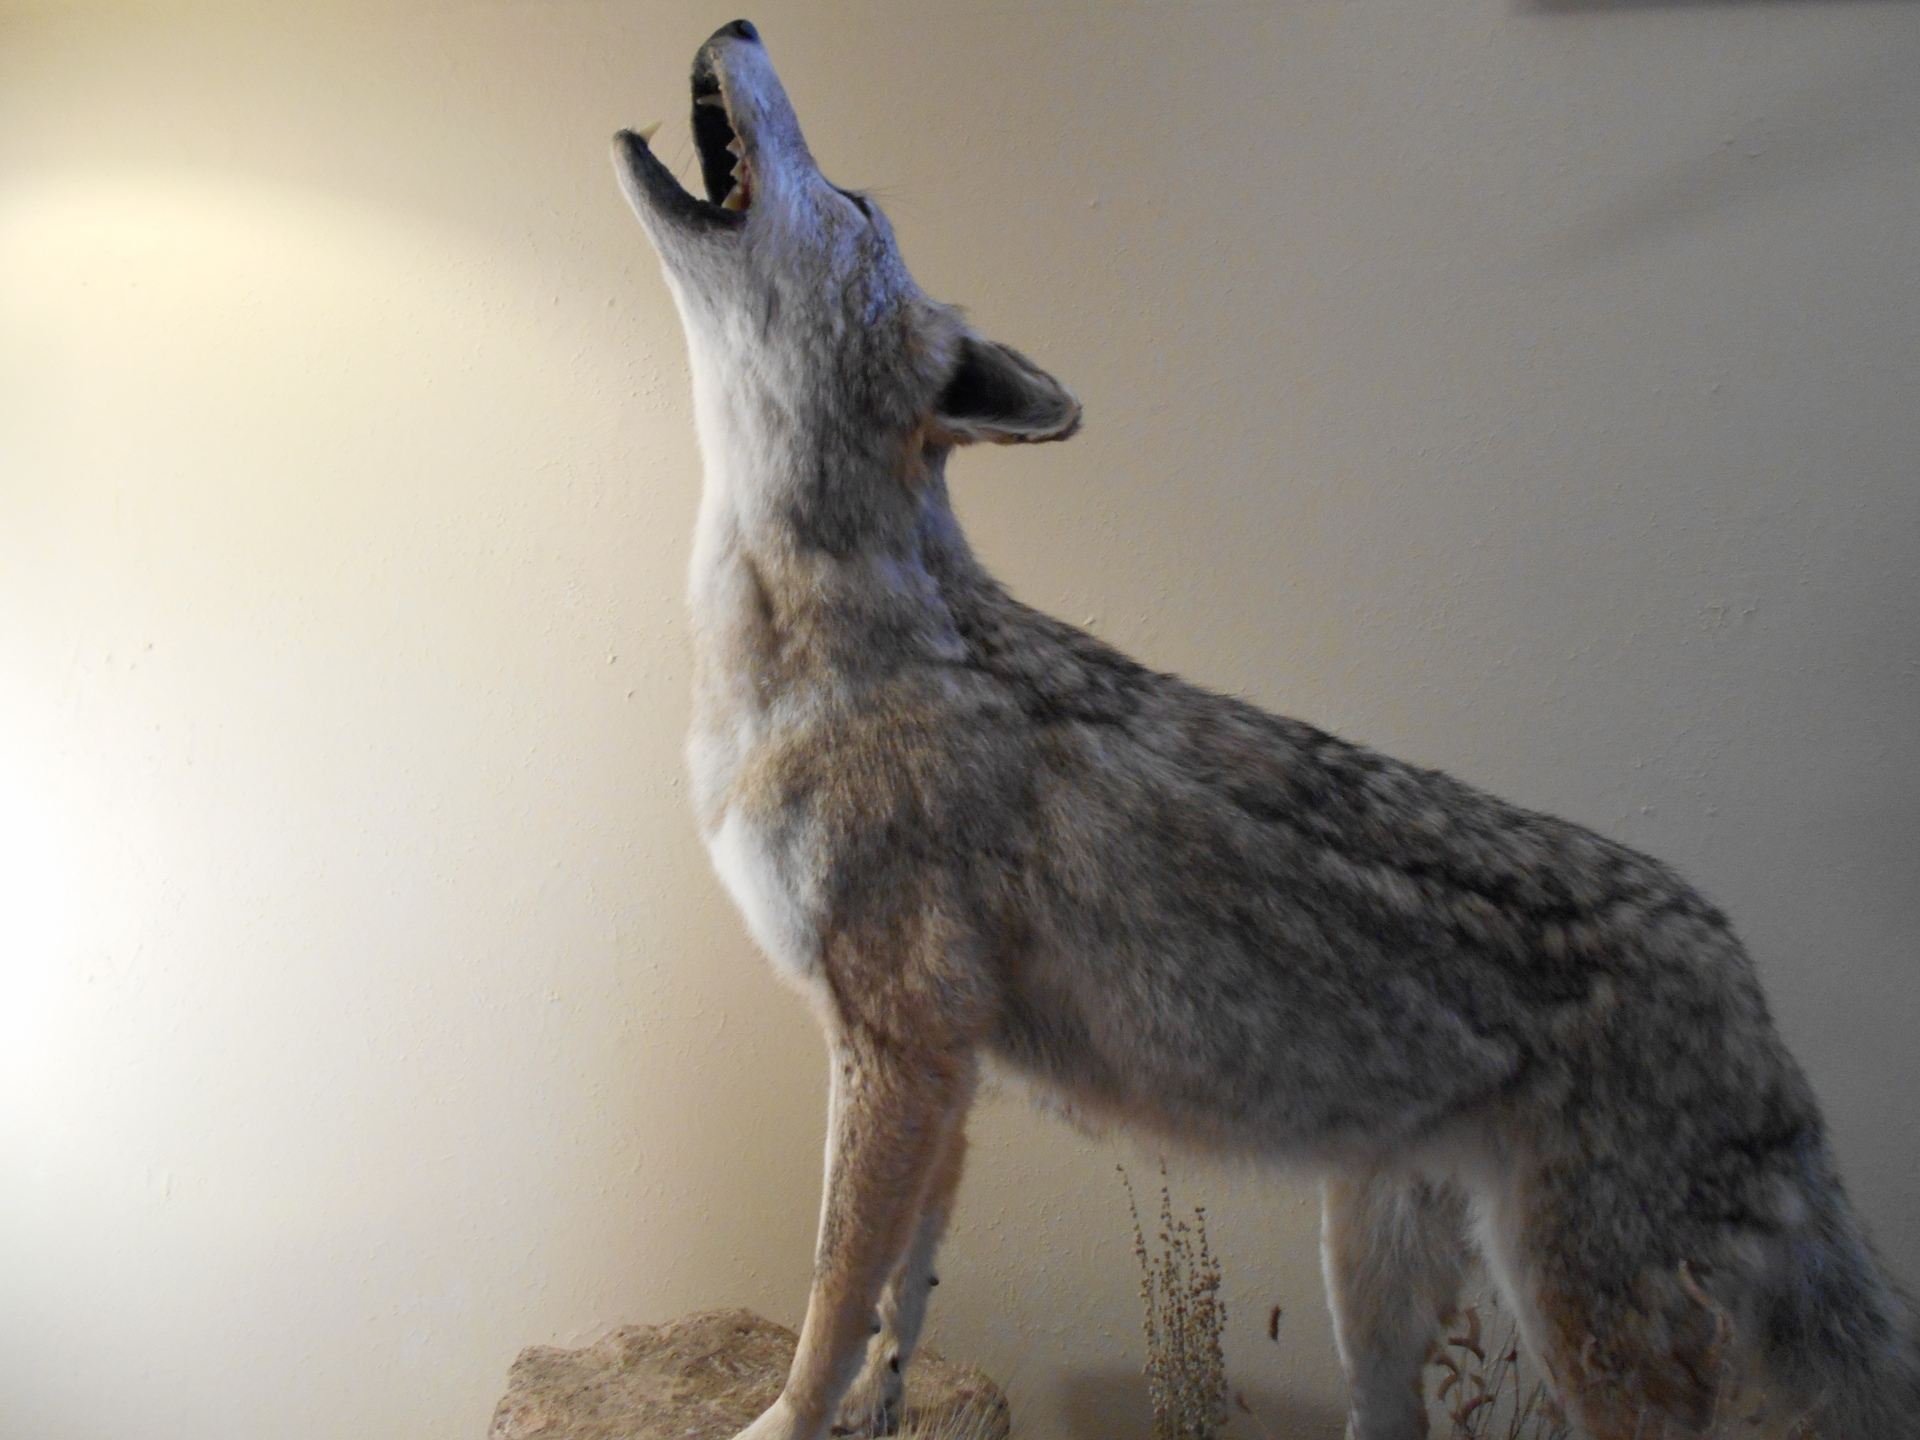 Golden Ridge Taxidermy, Taxidermy, Hunting, Coyote, Taxidermist